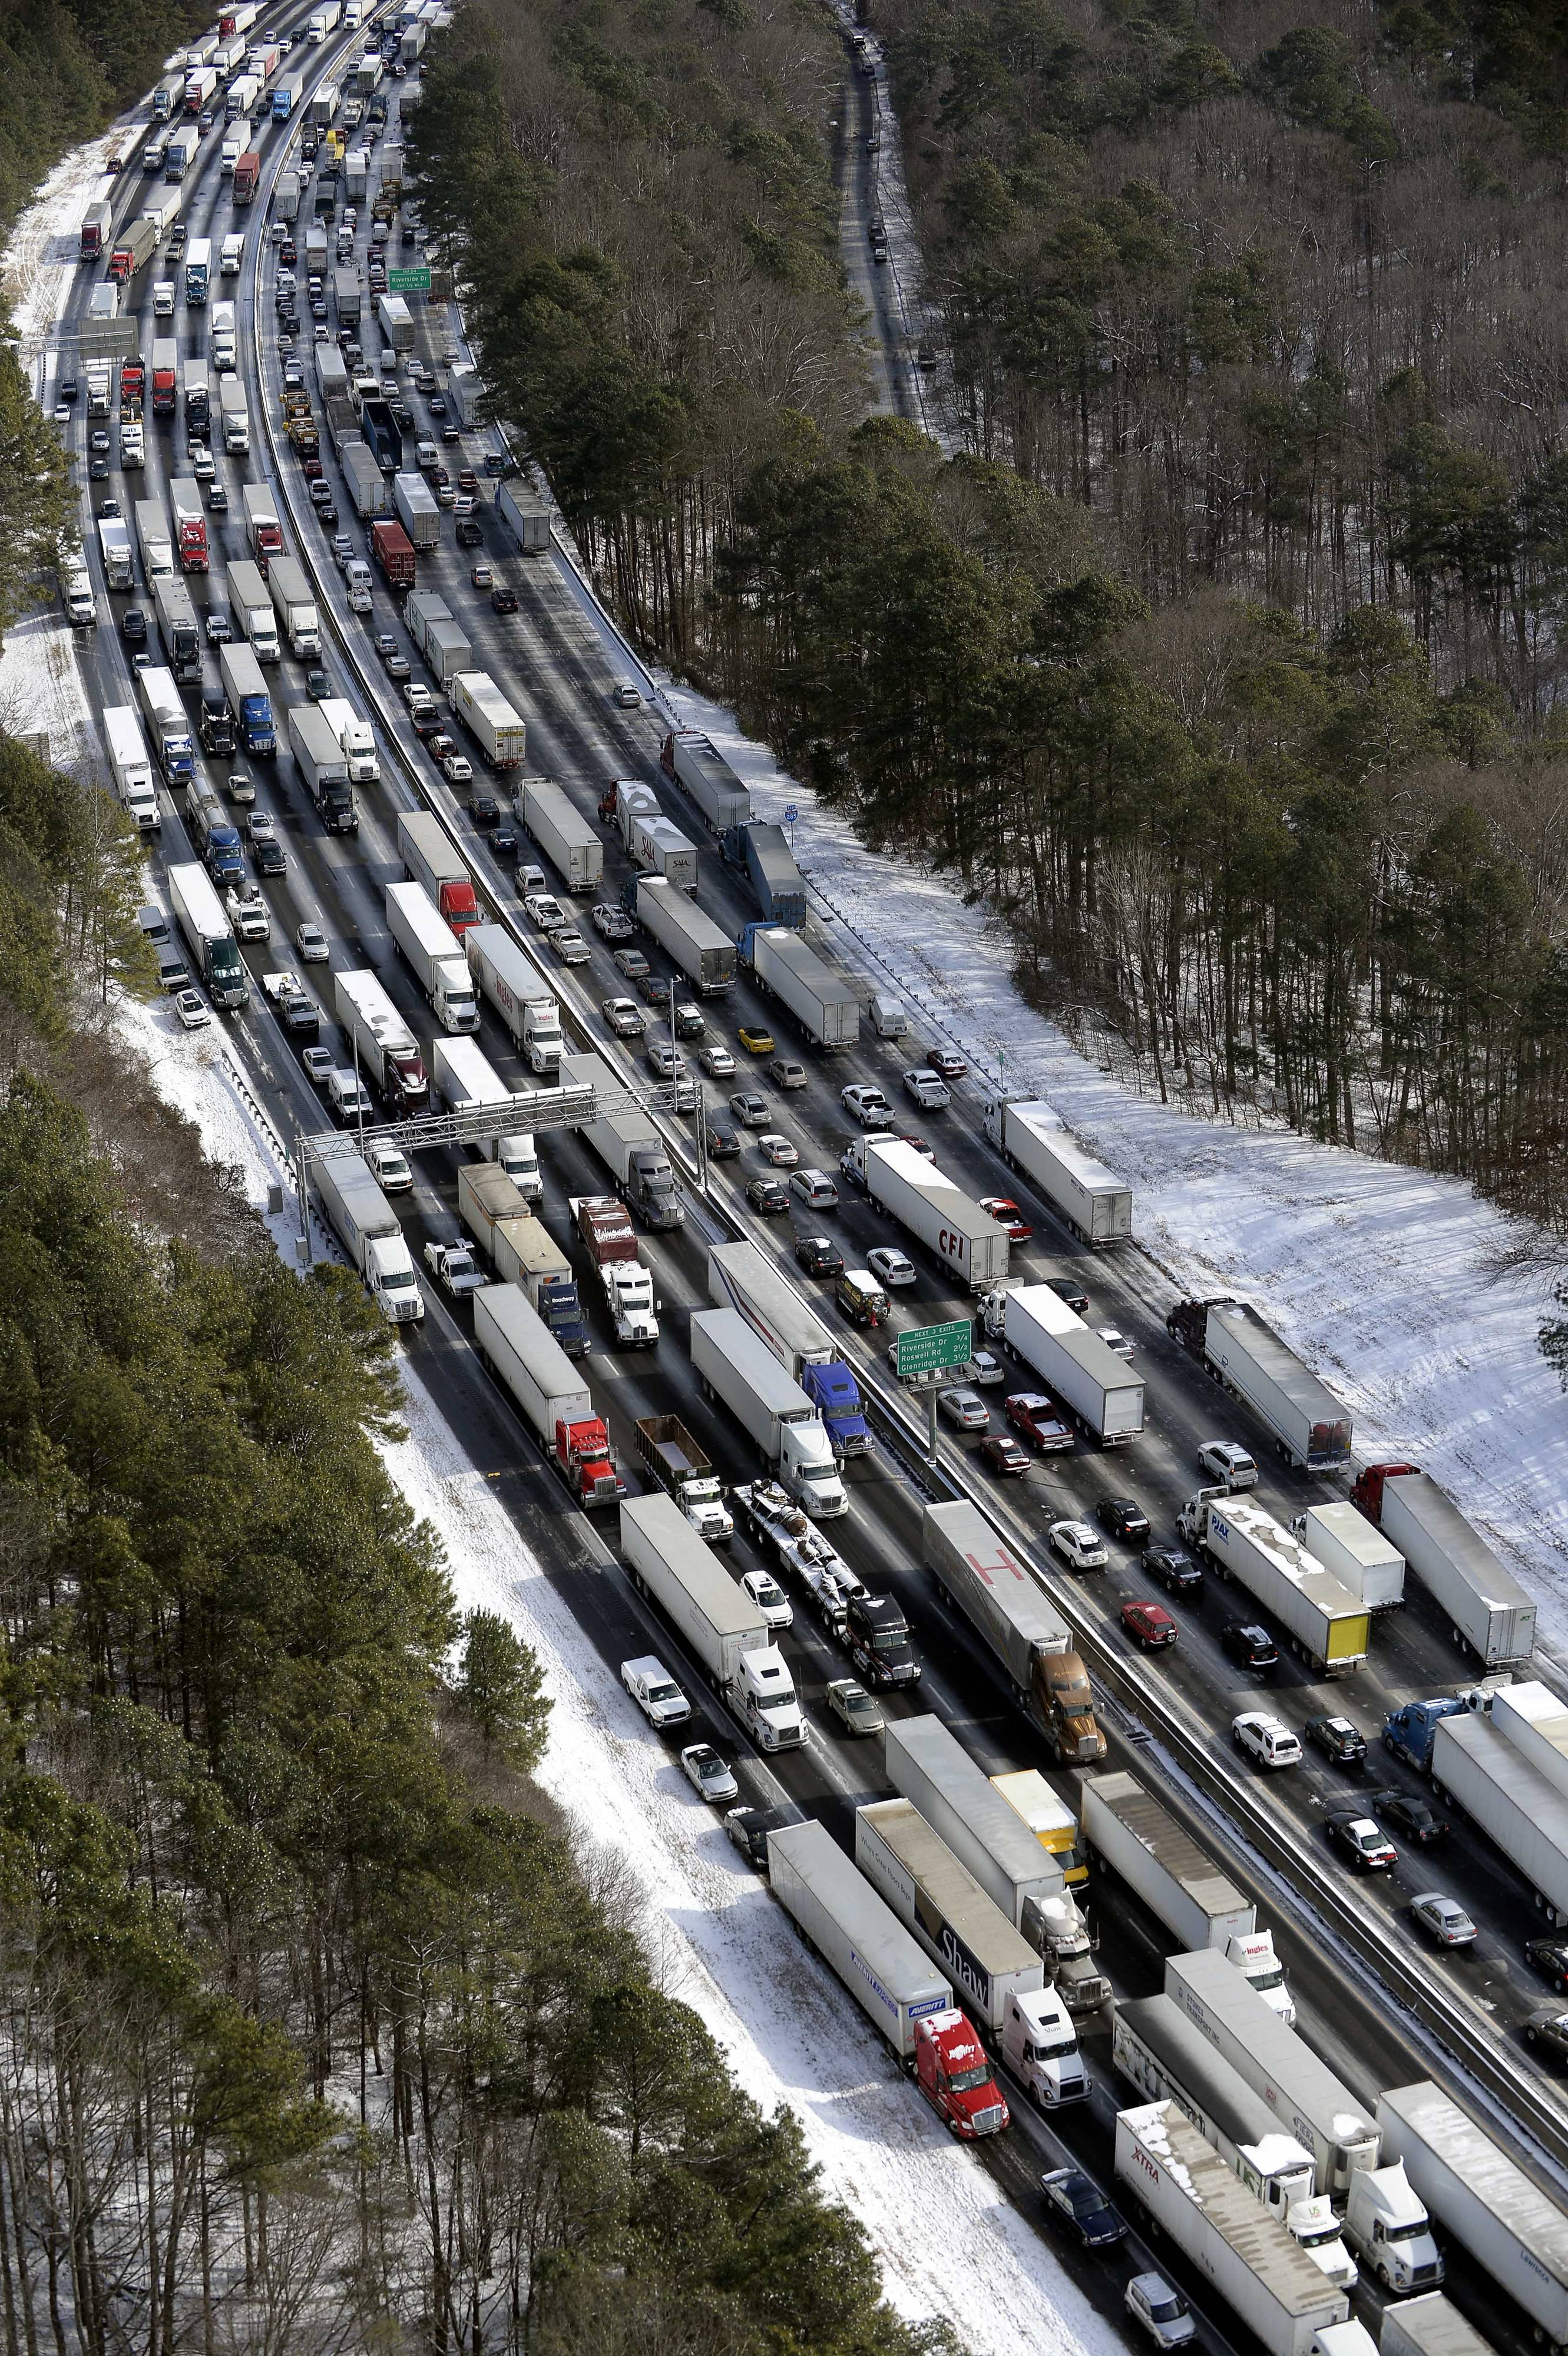 Traffic is snarled along the Interstate 285 perimeter, north of the metro area after a winter snowstorm, in Atlanta. With memories of thousands of vehicles gridlocked for hours on icy metro Atlanta highways fresh in their minds, emergency officials and elected leaders in north Georgia were preparing Monday, Feb. 10, 2014, for another round of winter weather.